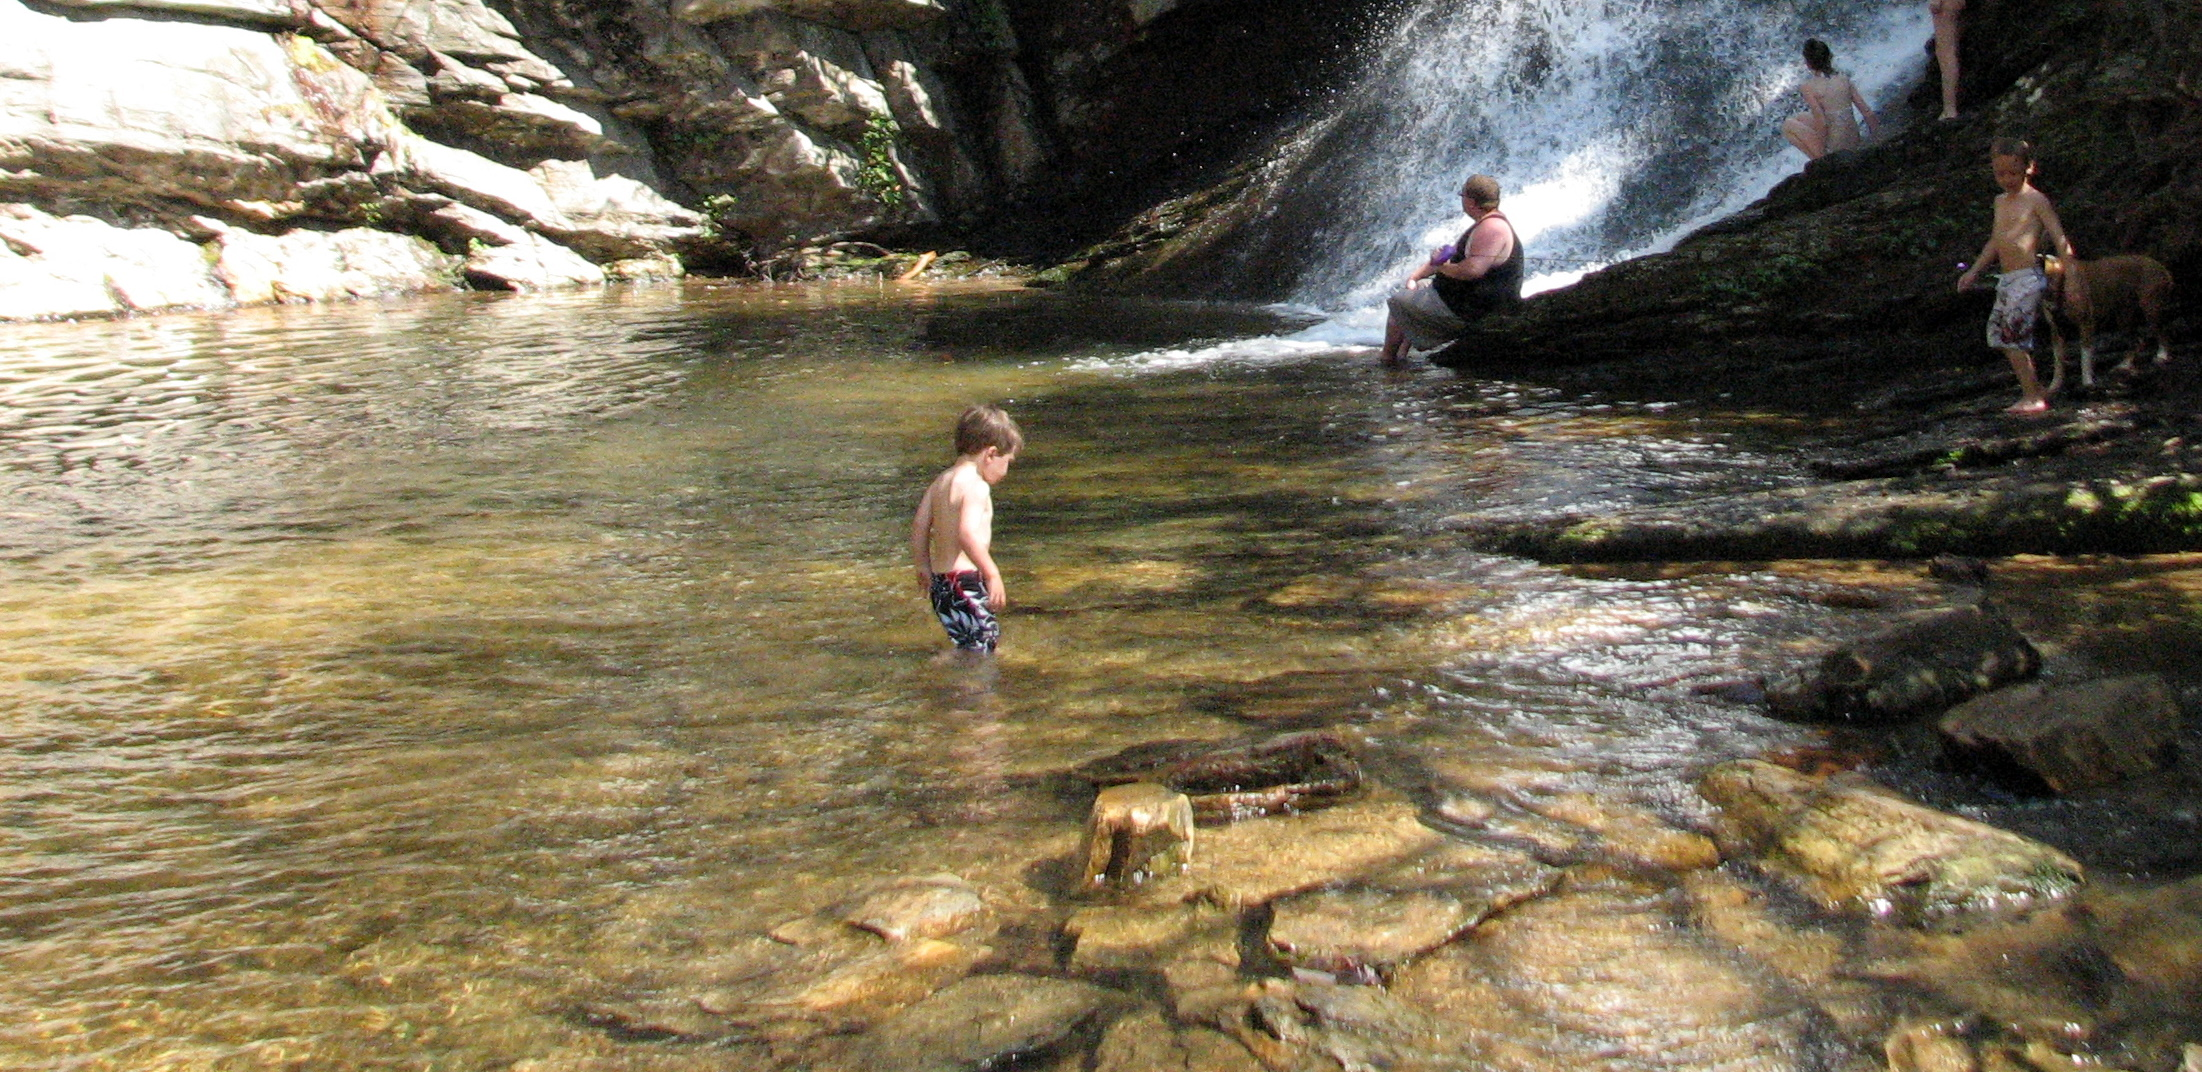 8 North Carolina Swimming Holes With The Clearest Water